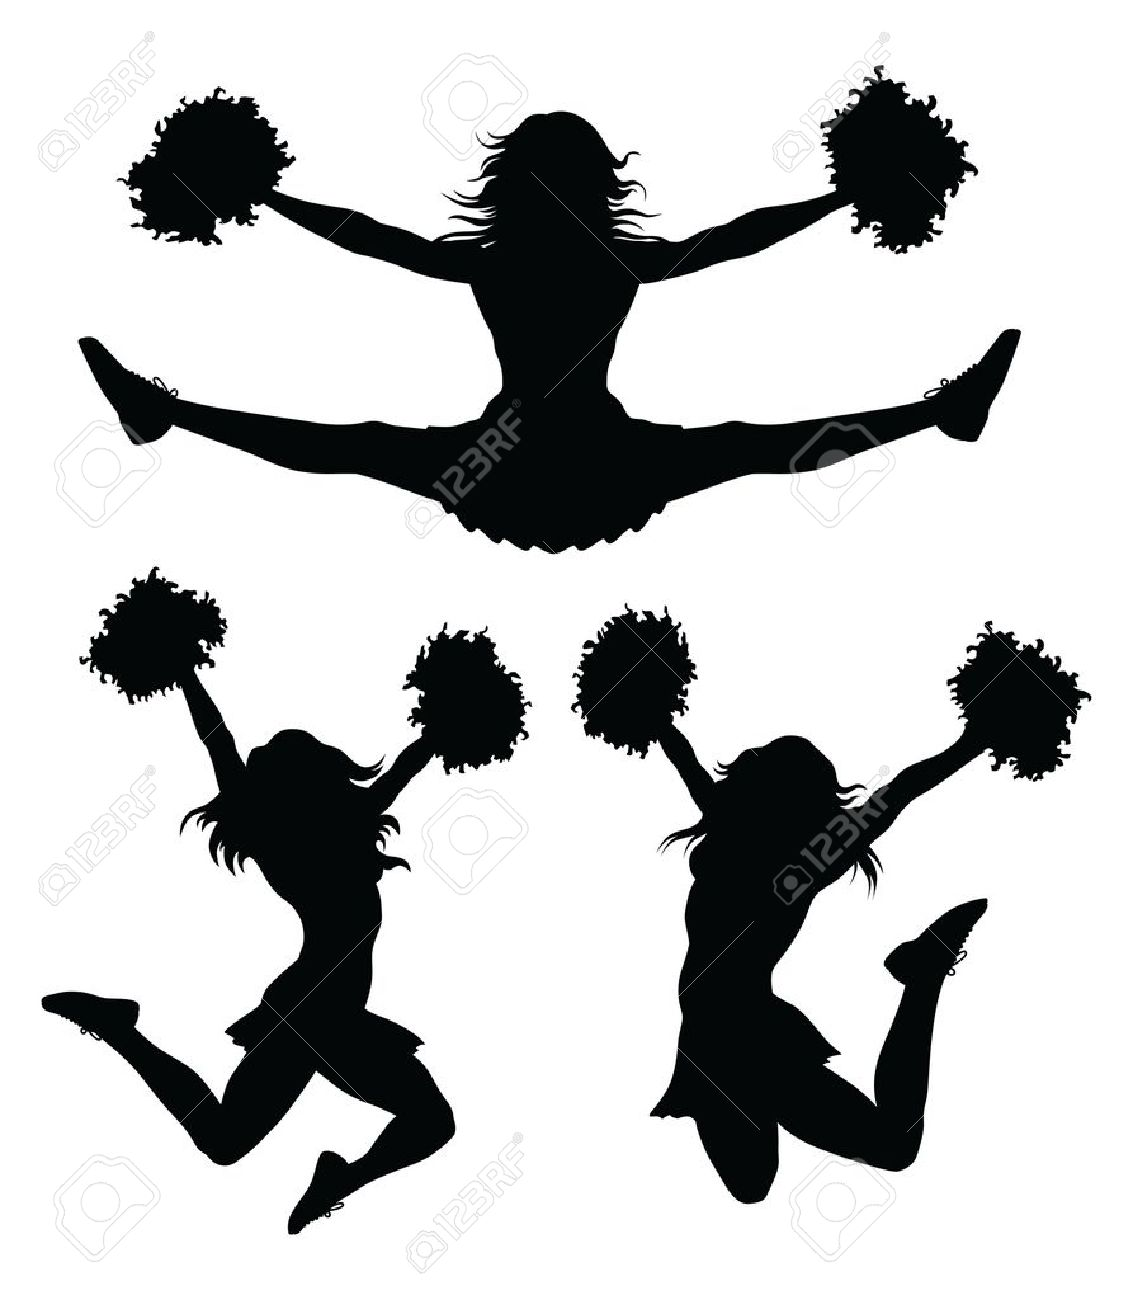 Cheer toe touch clipart clipart library stock Toe Touch Cliparts | Free download best Toe Touch Cliparts on ... clipart library stock